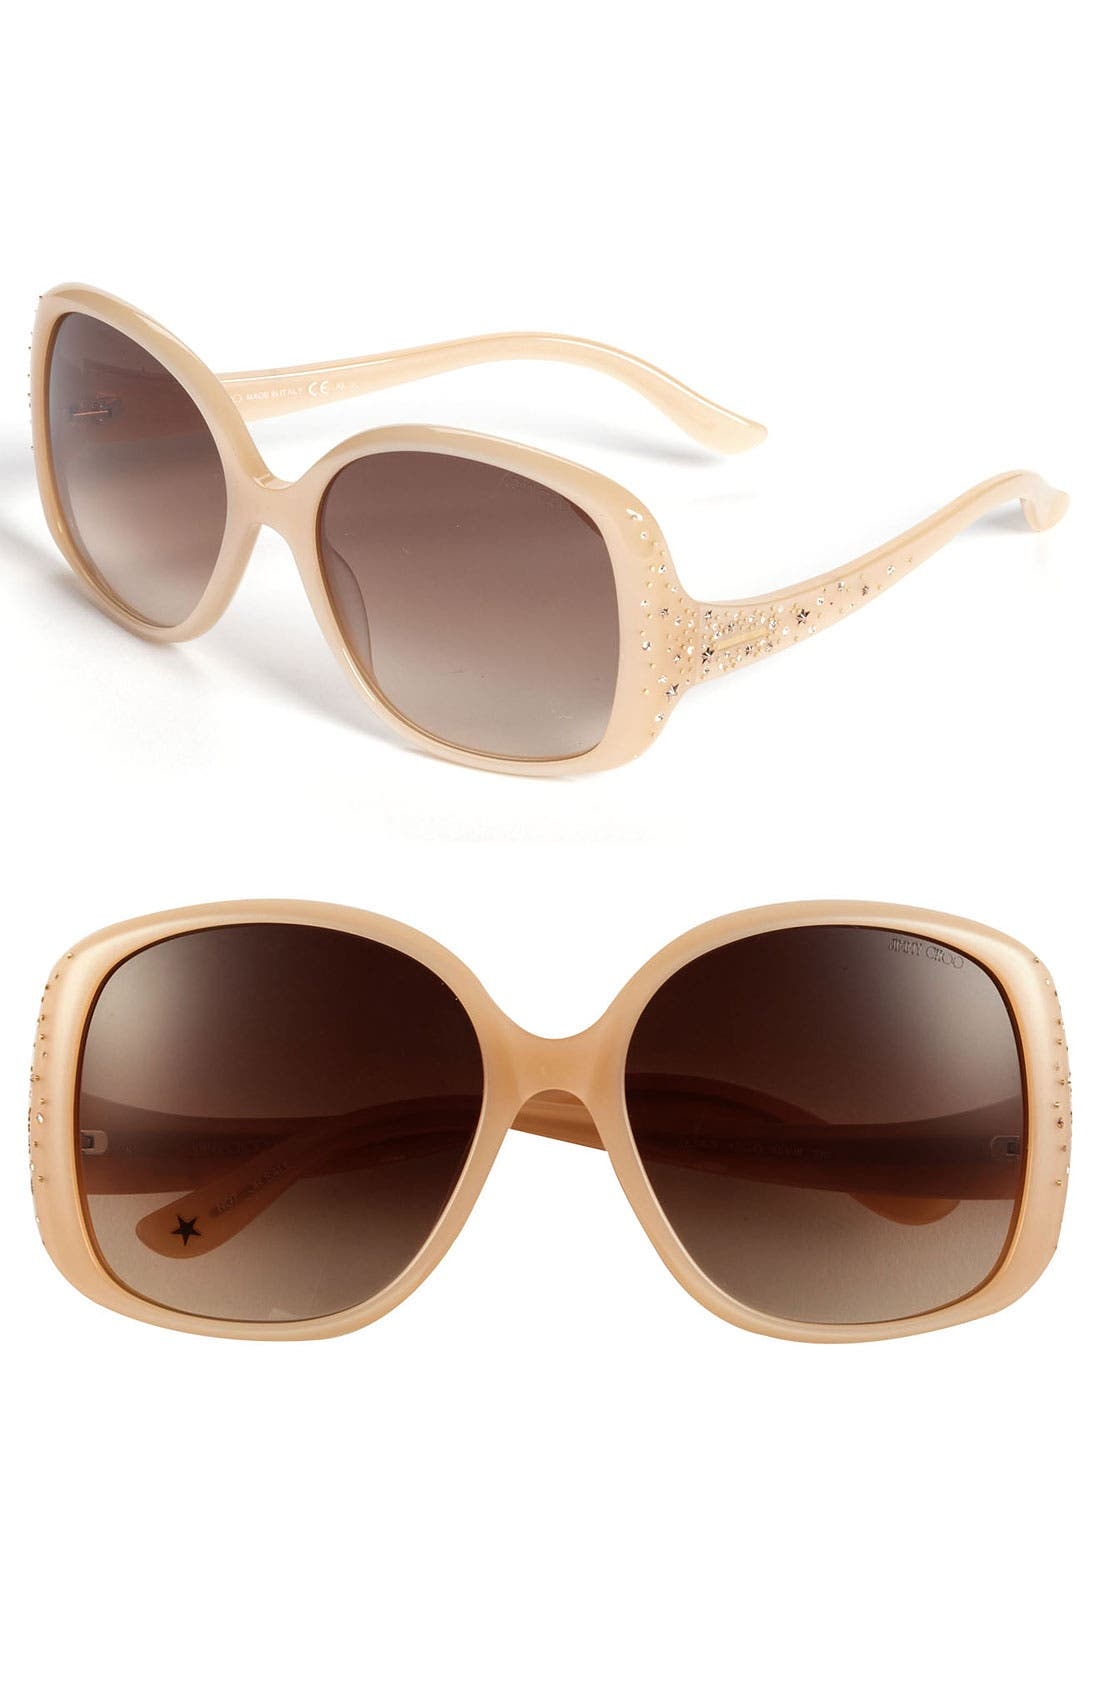 Main Image - Jimmy Choo 'Zeta' 58mm Crystal Temple Sunglasses